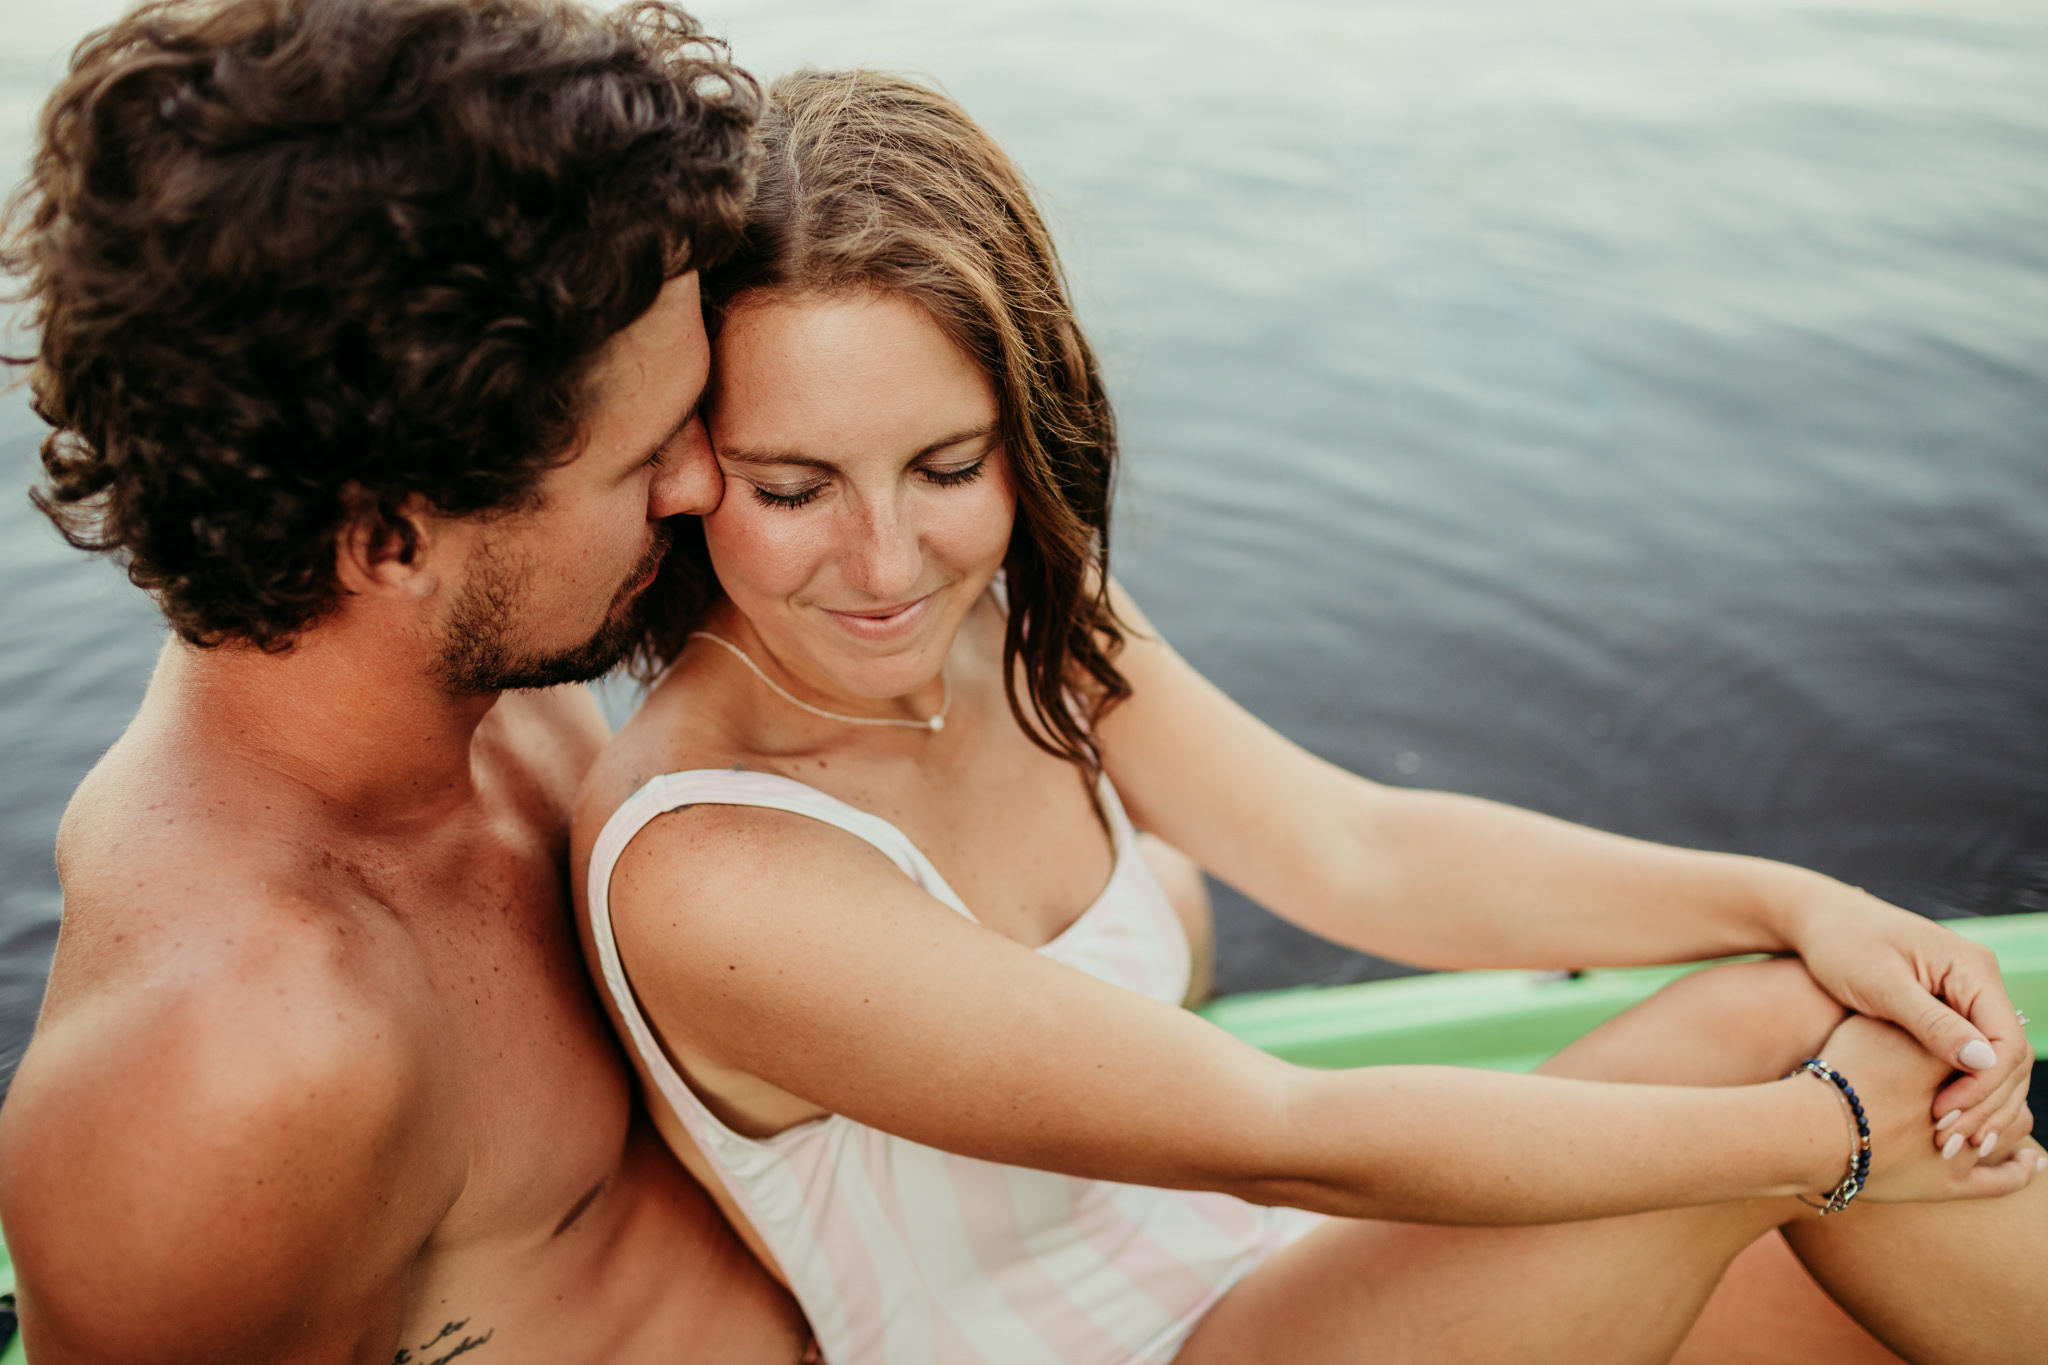 guy snuggling with his girlfriend on their lake engagement session